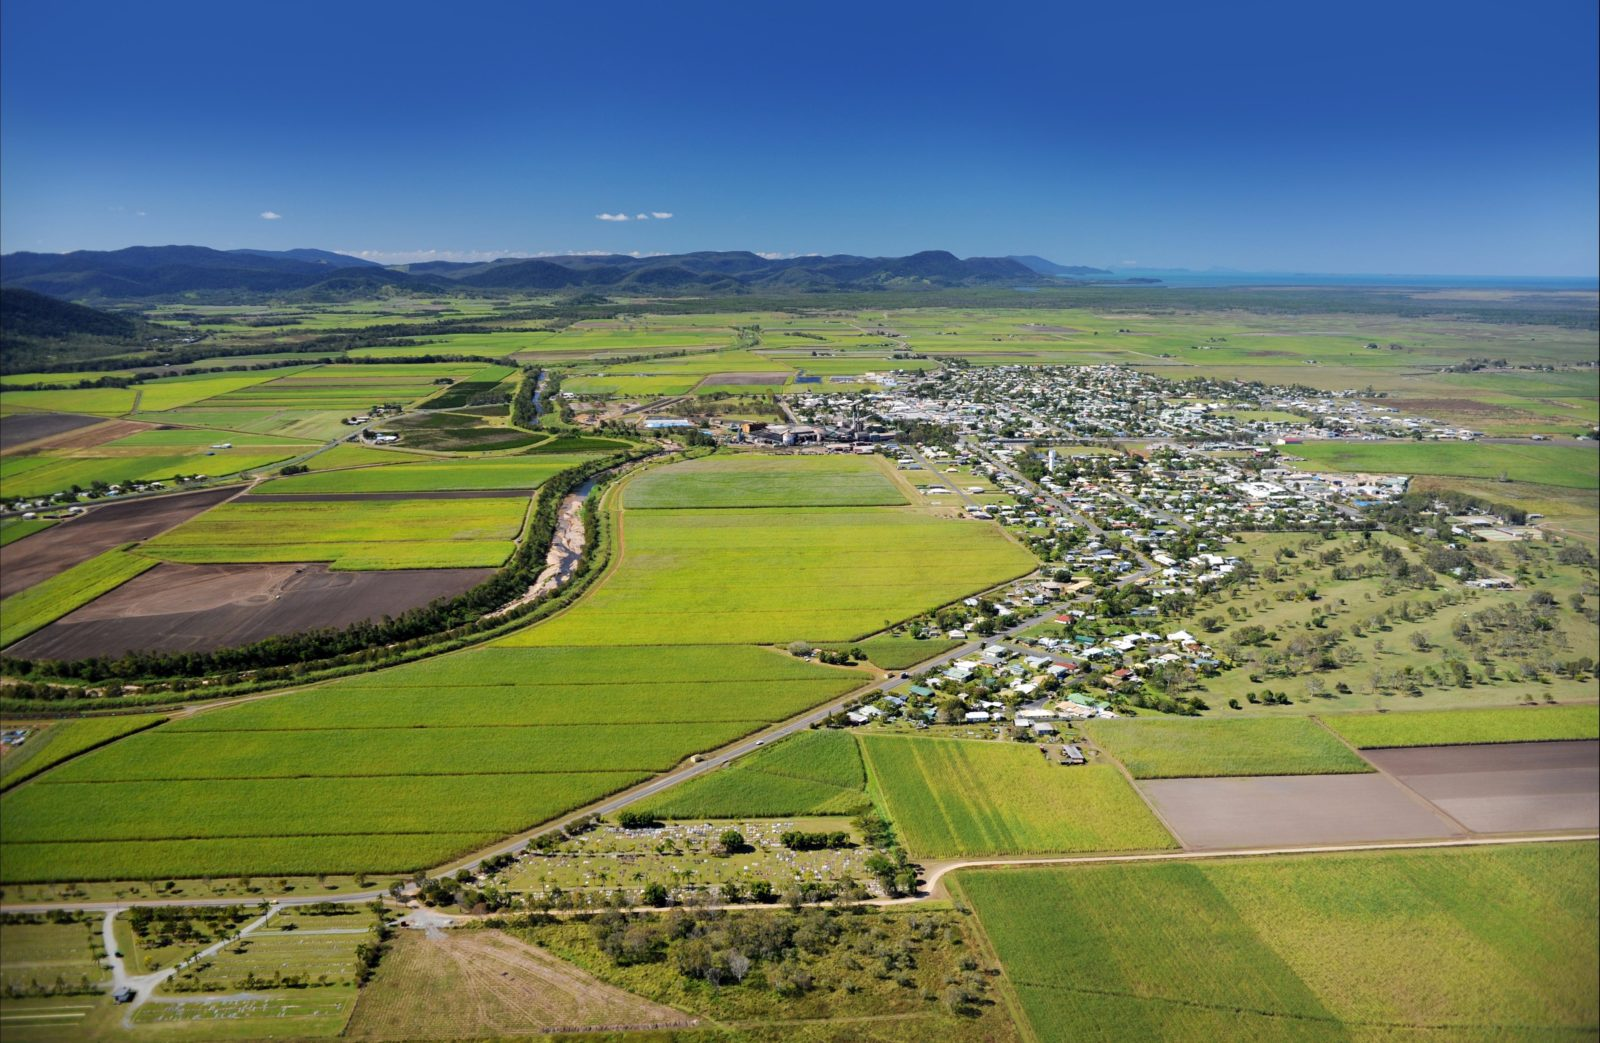 Aerial view of Proserpine